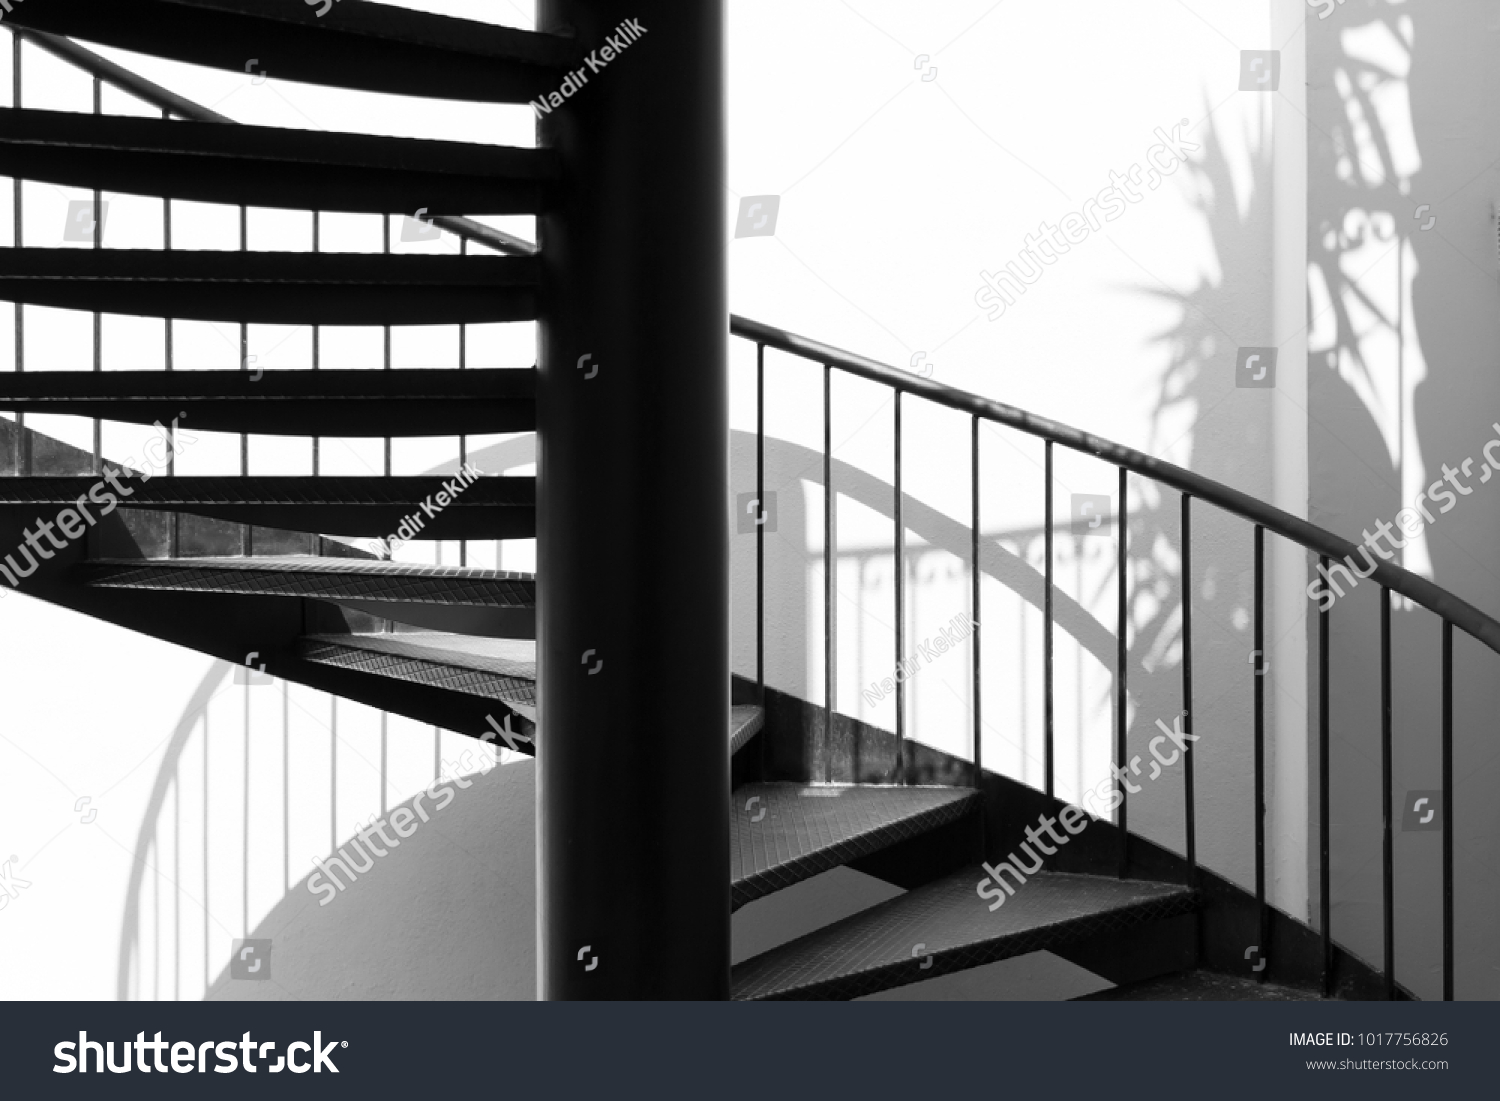 Black Metal Round Stair With White Wall And Shadows. Stairway, Staircase,  Stairwell,